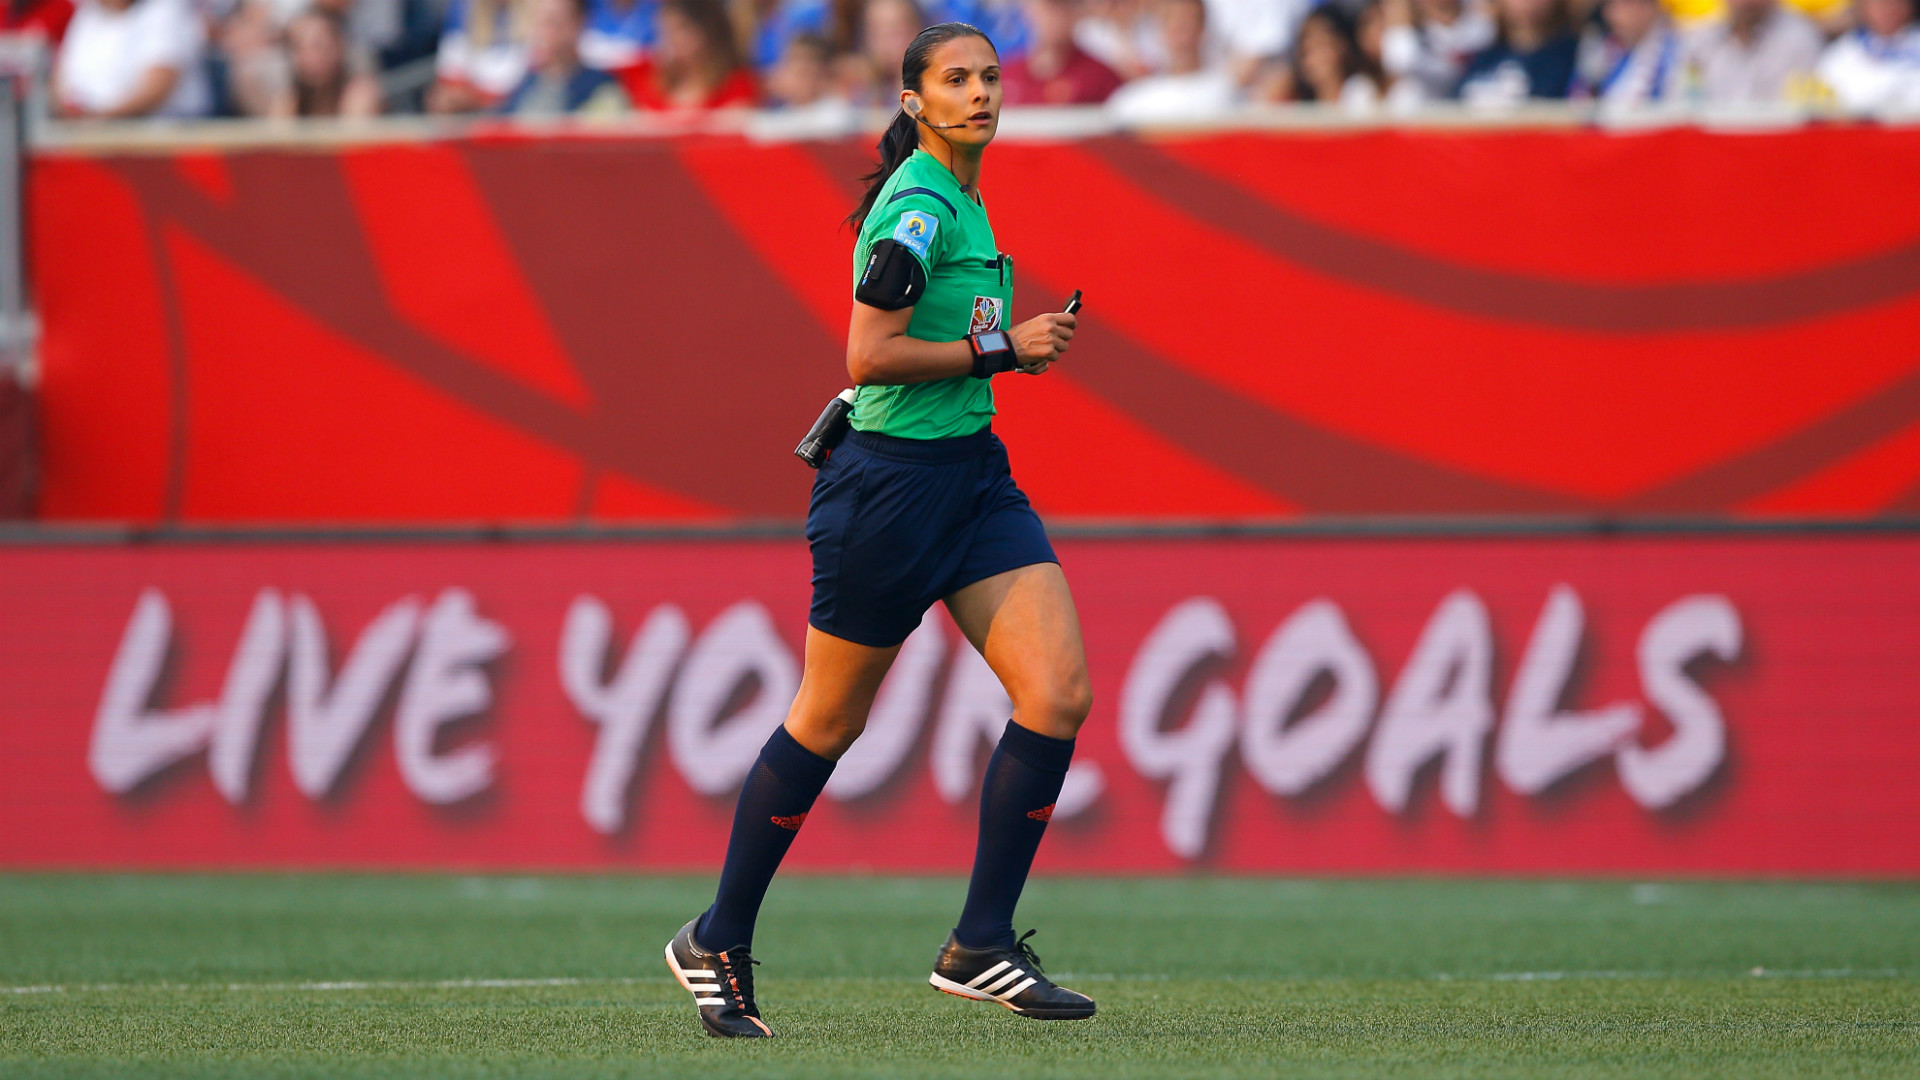 Claudia Umpierrez Makes History As the First Female Referee in Uruguay's Primera División